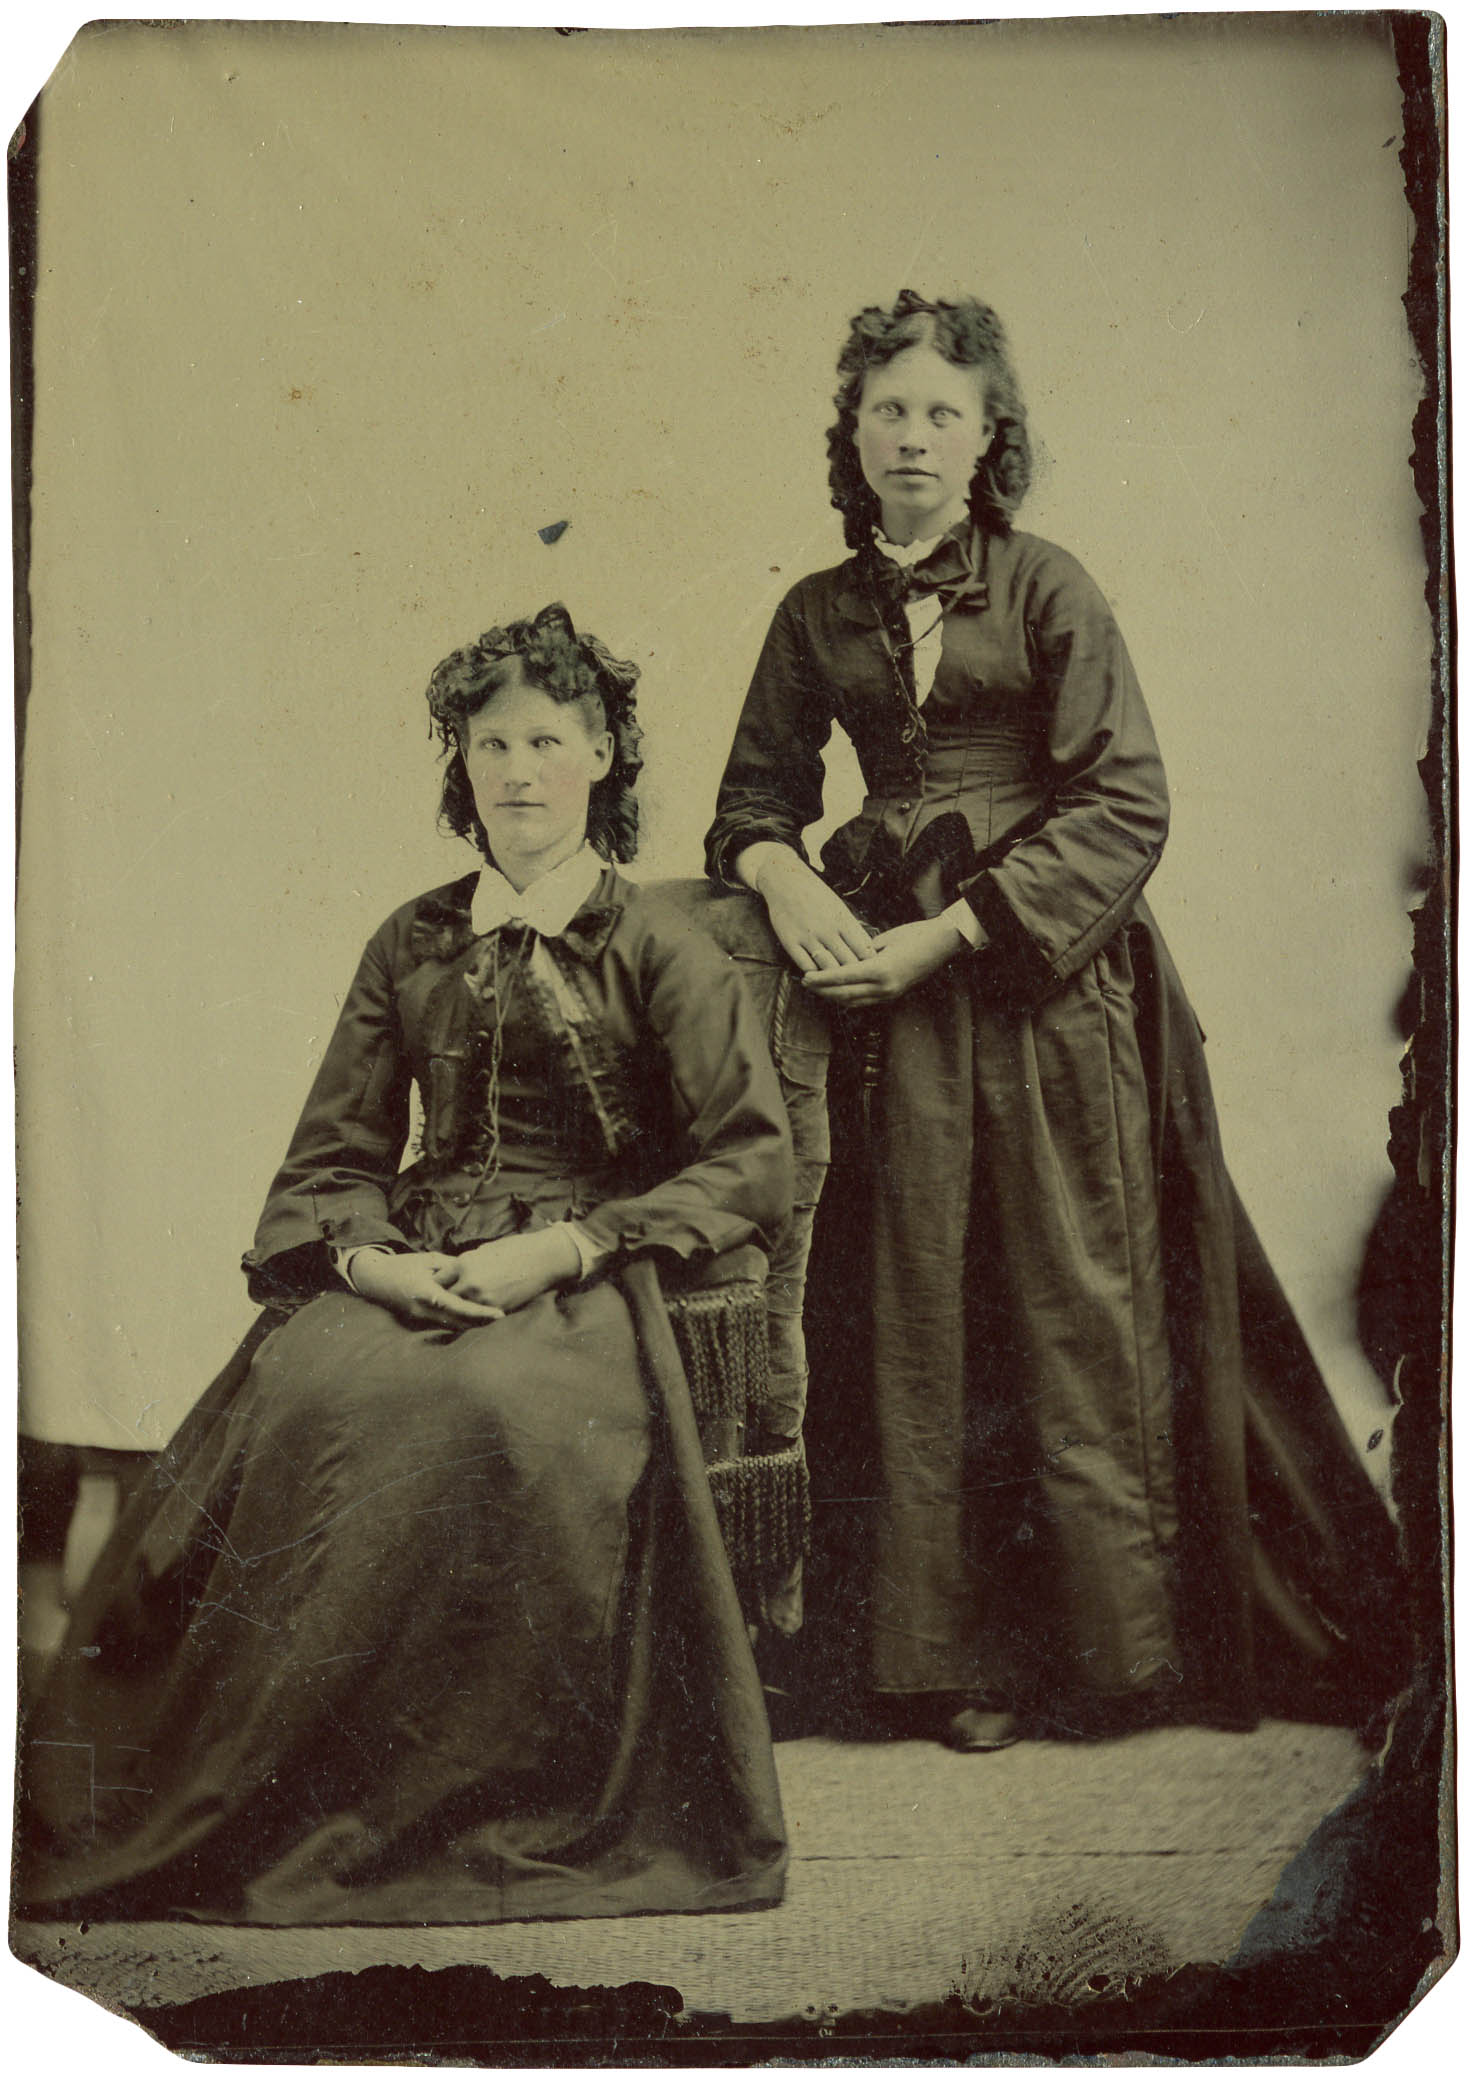 dating tintype photographs Could the photograph s be of her sisters, parents, or cousins i looked at the other photographs, and came across this one, in a different box.